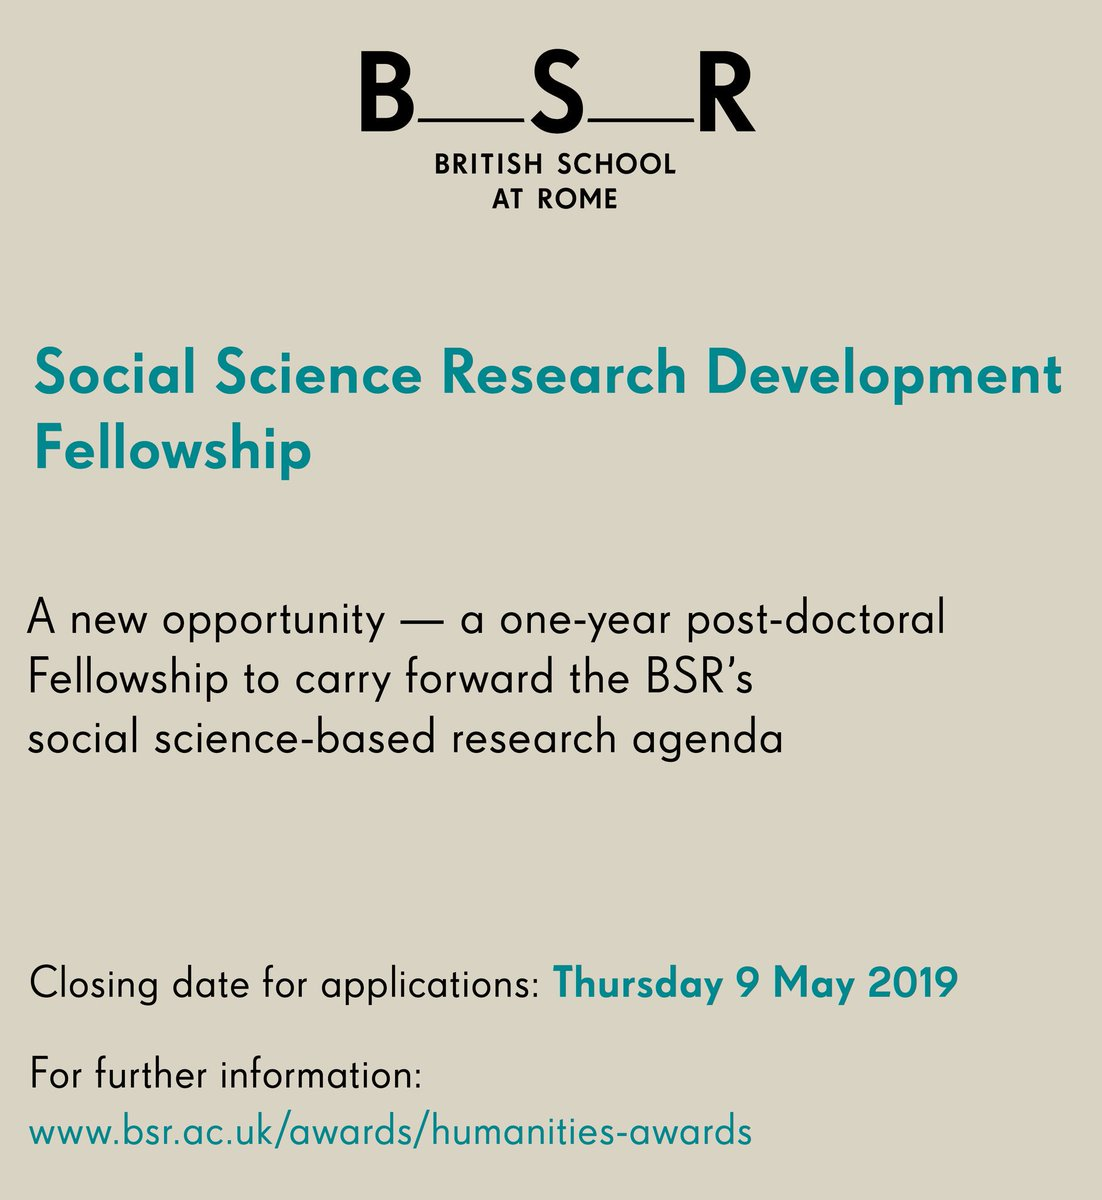 0fd0ad1ed68 ...  socialscience  postdoctoral  fellowship based in  Rome at  the bsr!  For further details and an application form